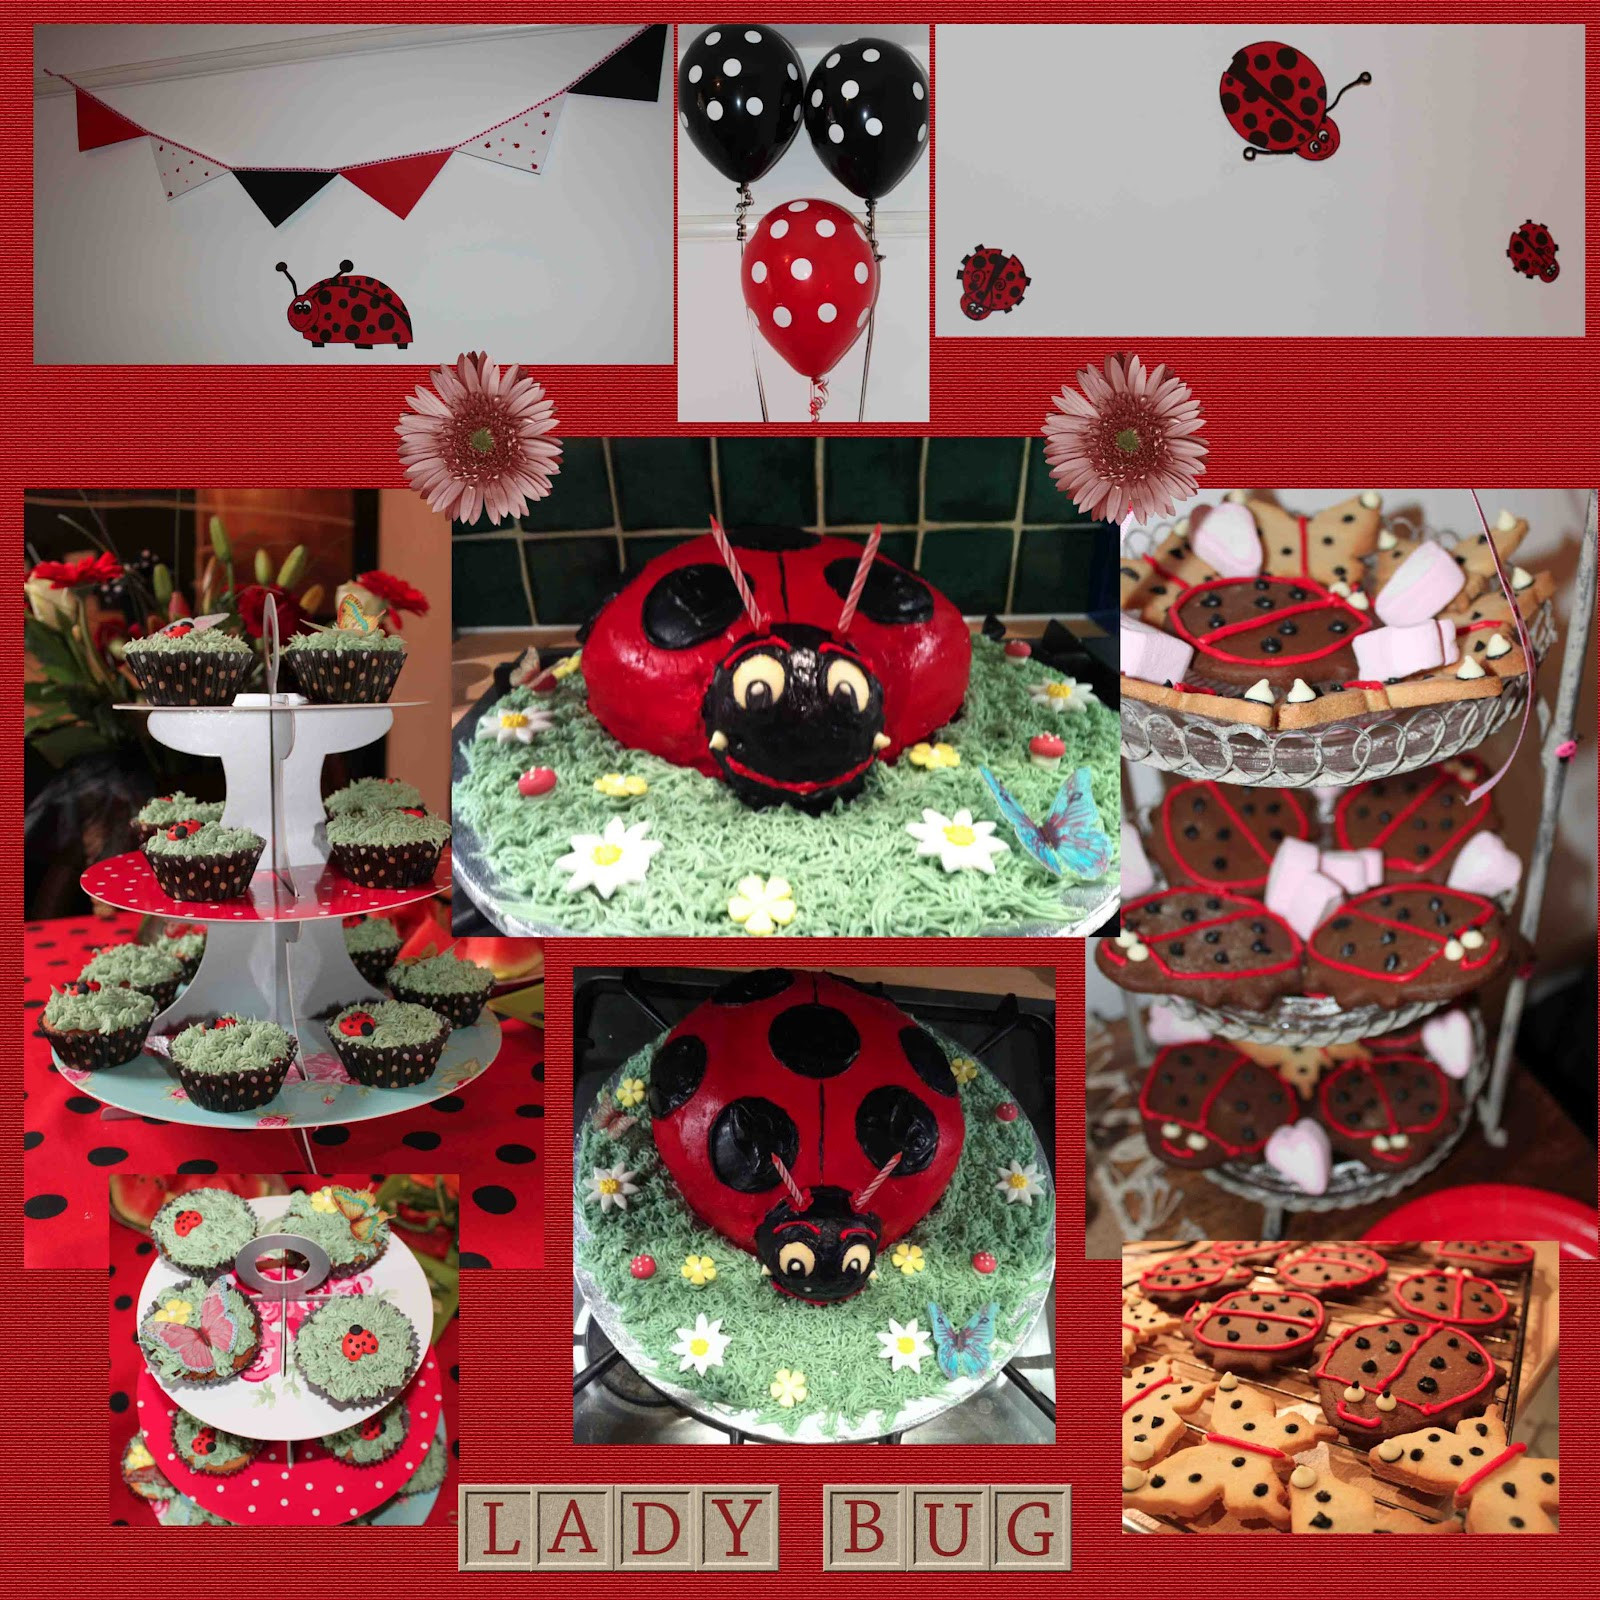 Best ideas about Ladybug Birthday Party . Save or Pin Little People Thinking Parents Ladybug party Michaela Now.